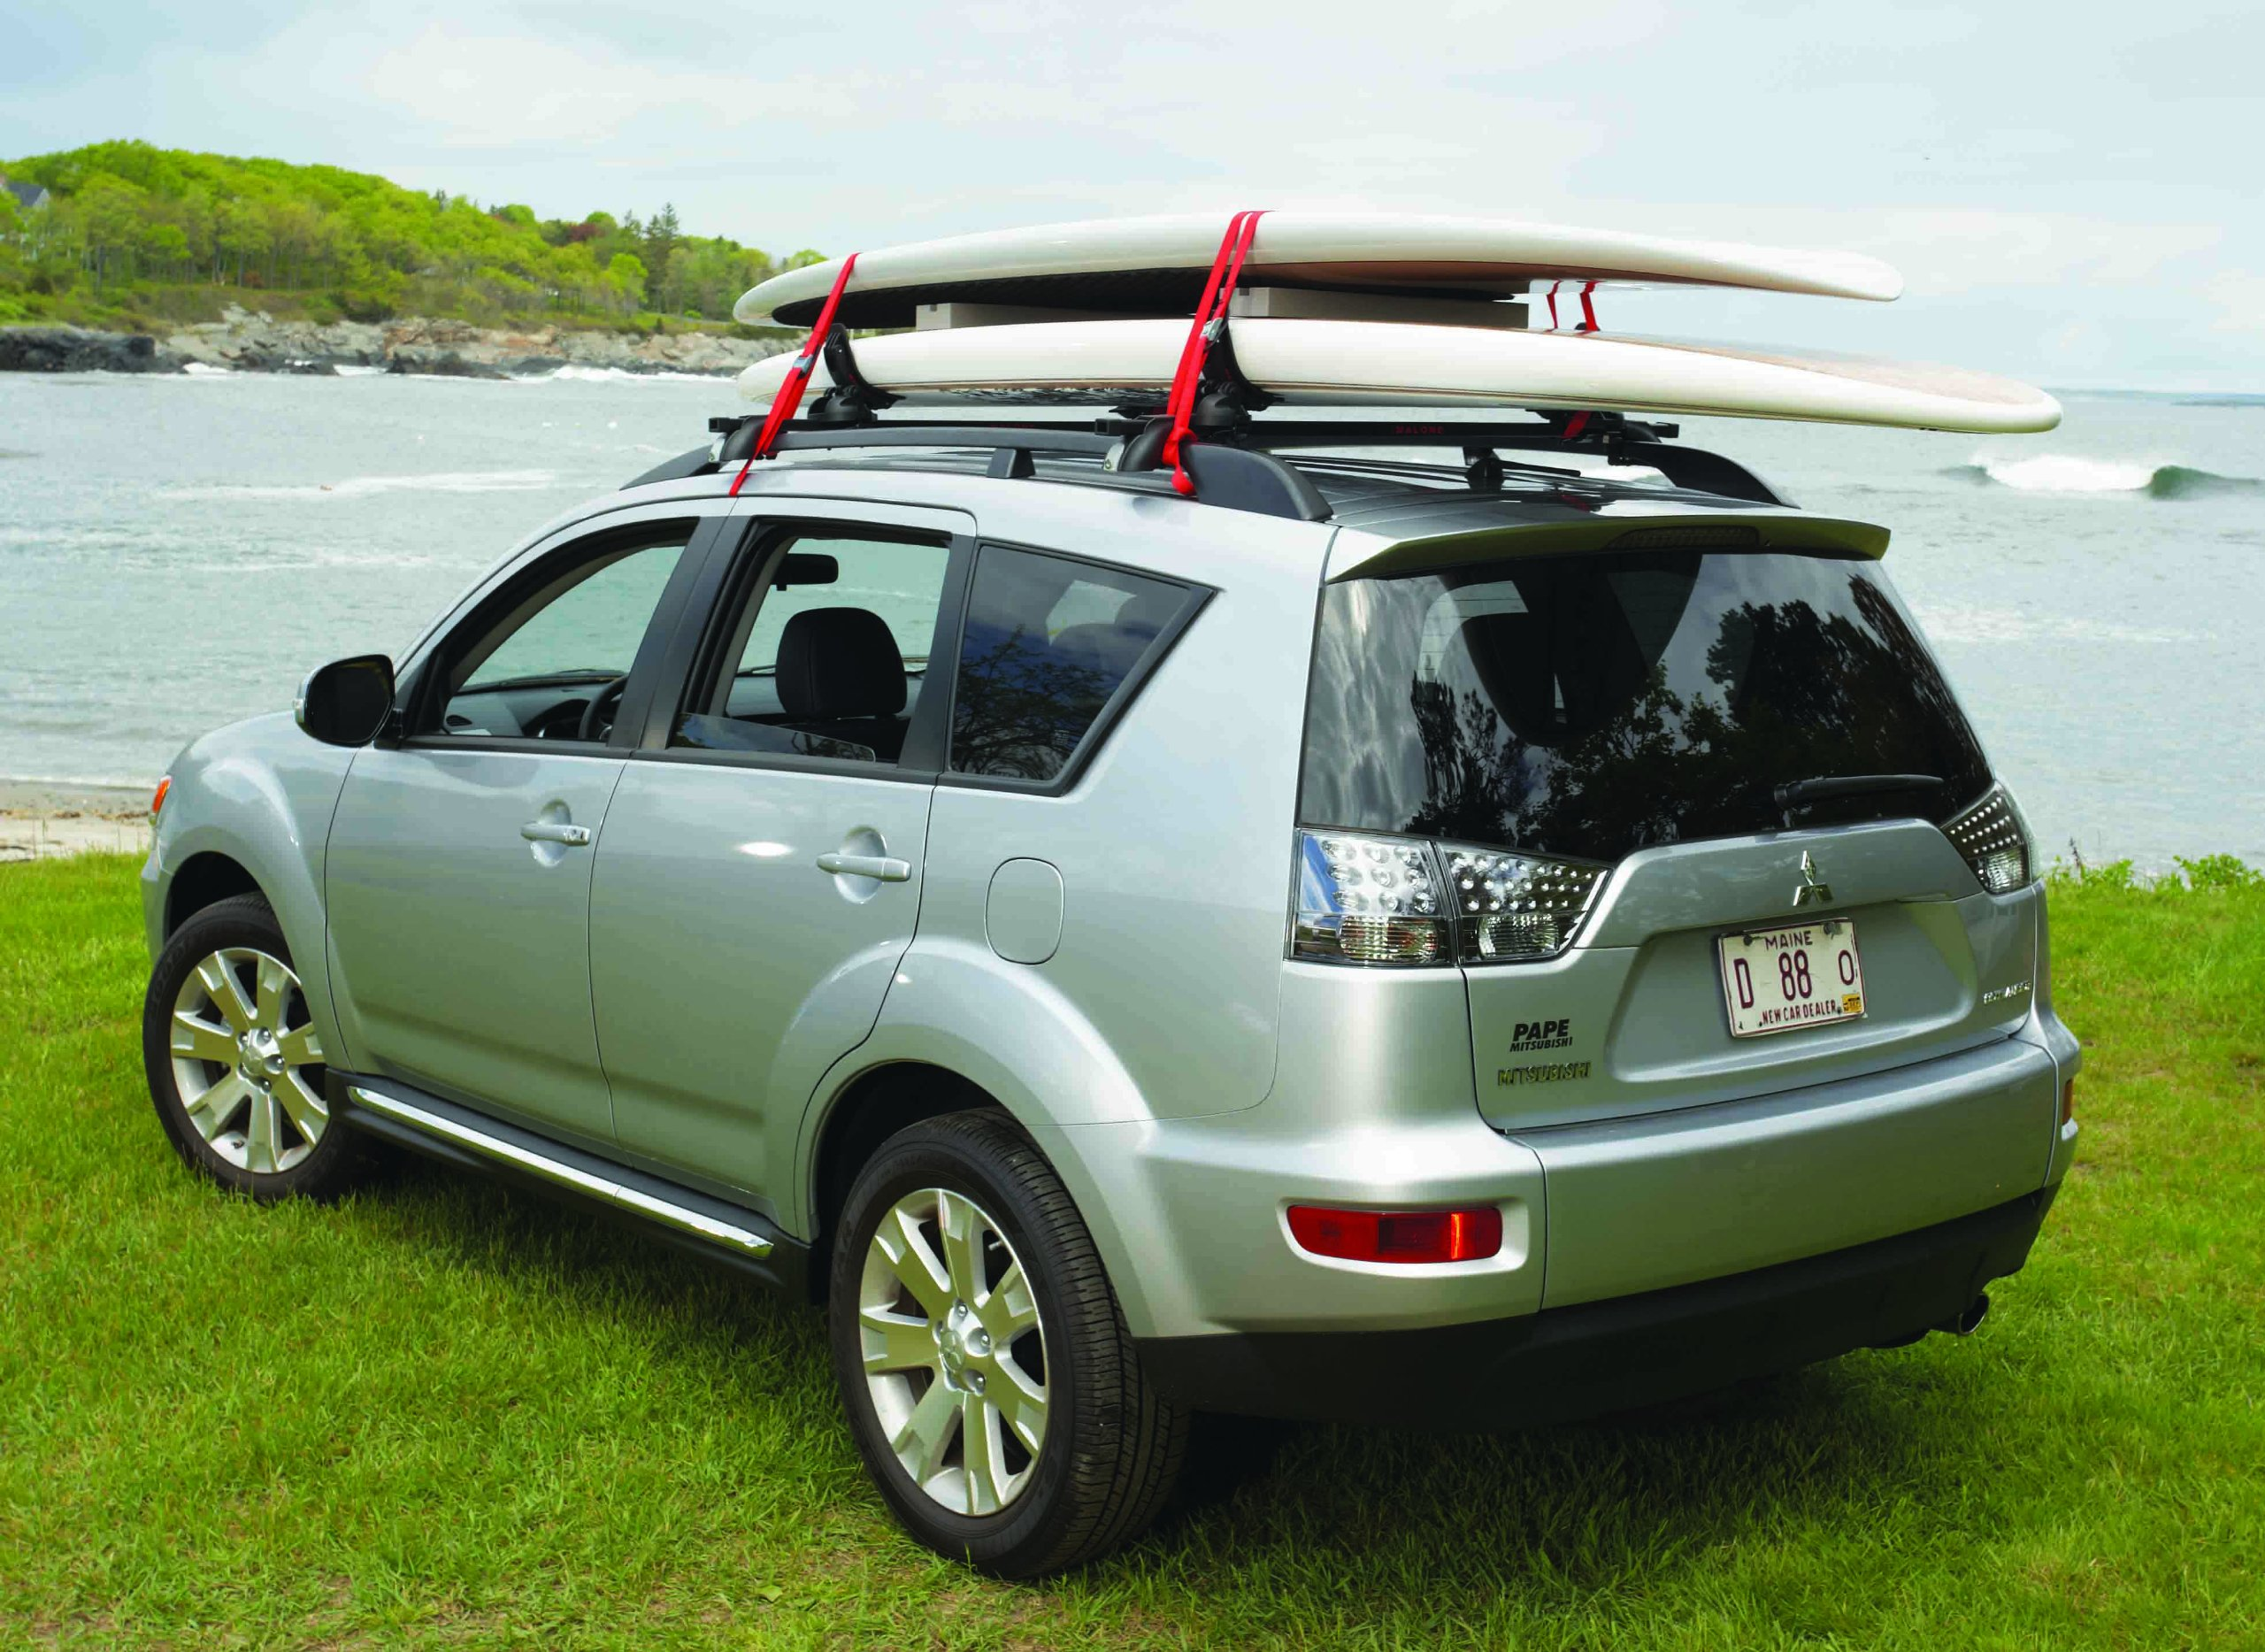 Best Rated In Surfboard Car Racks Helpful Customer Reviews Hit Auta 2040 Electric Antenna Universal Fitting Malone Auto Maui 2 Two Board Fit Saddle System Product Image